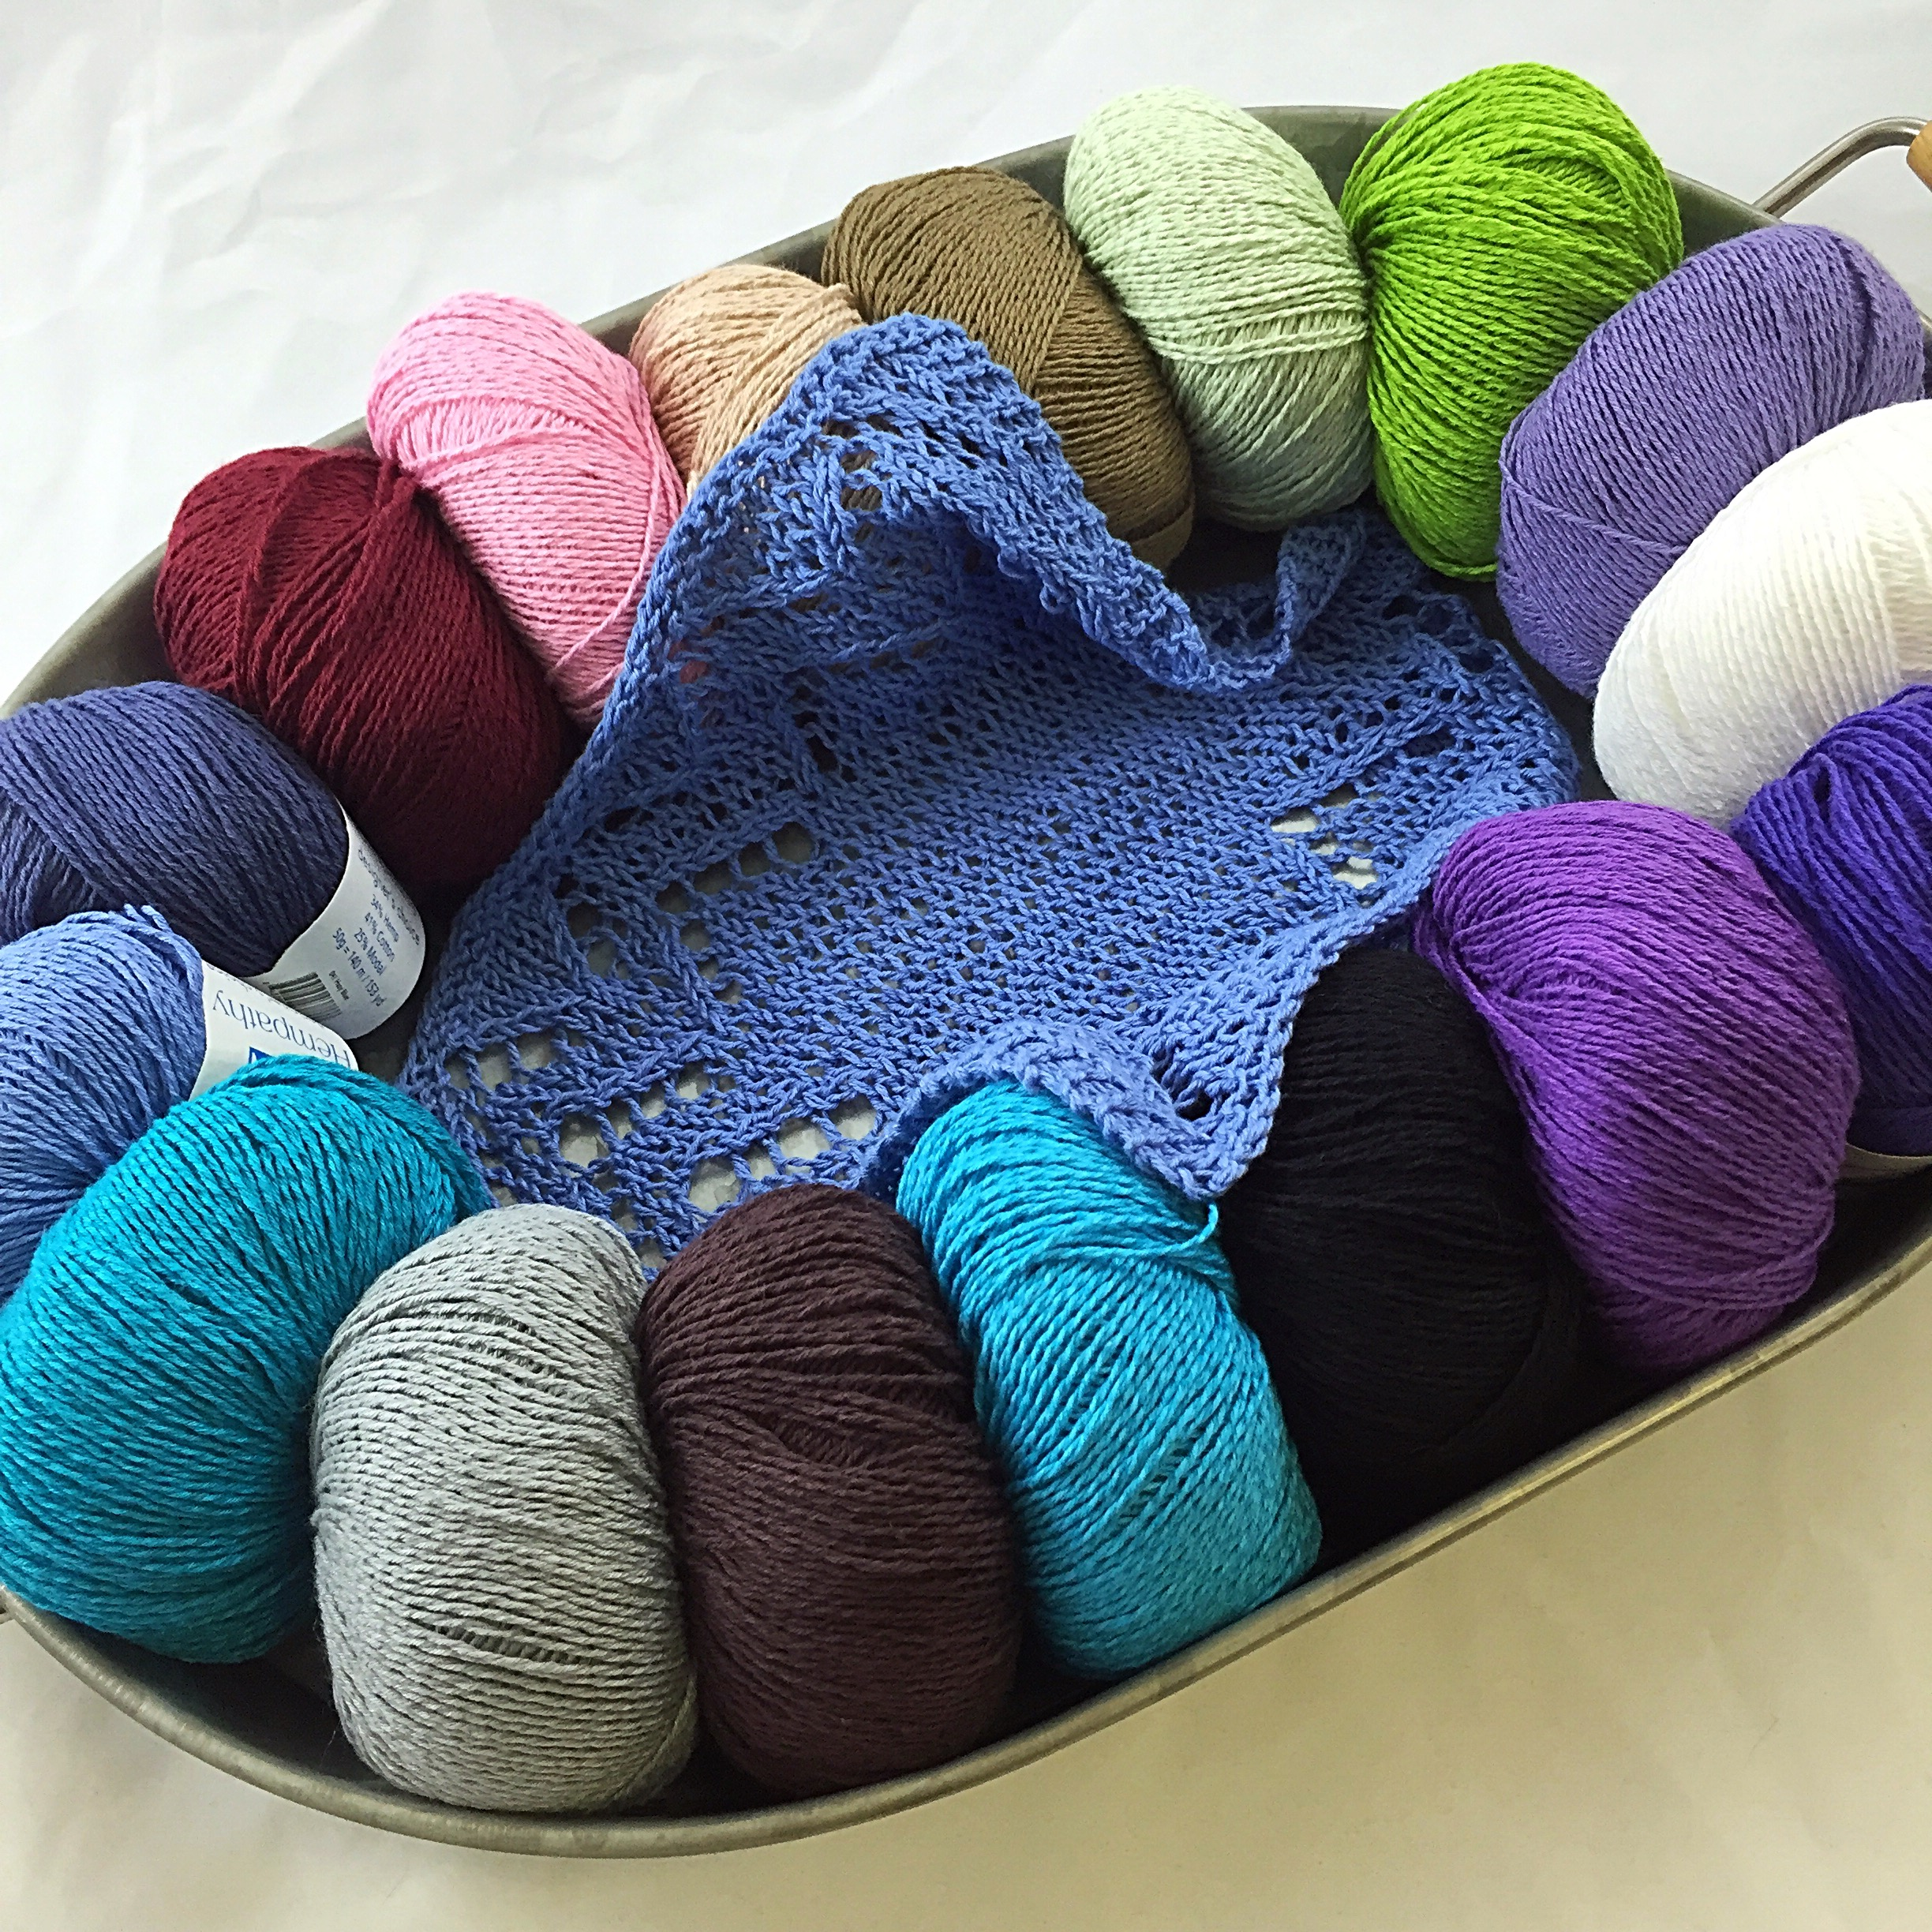 Knitting Classes : Lace Knitting Class Fee - Twisted Purl